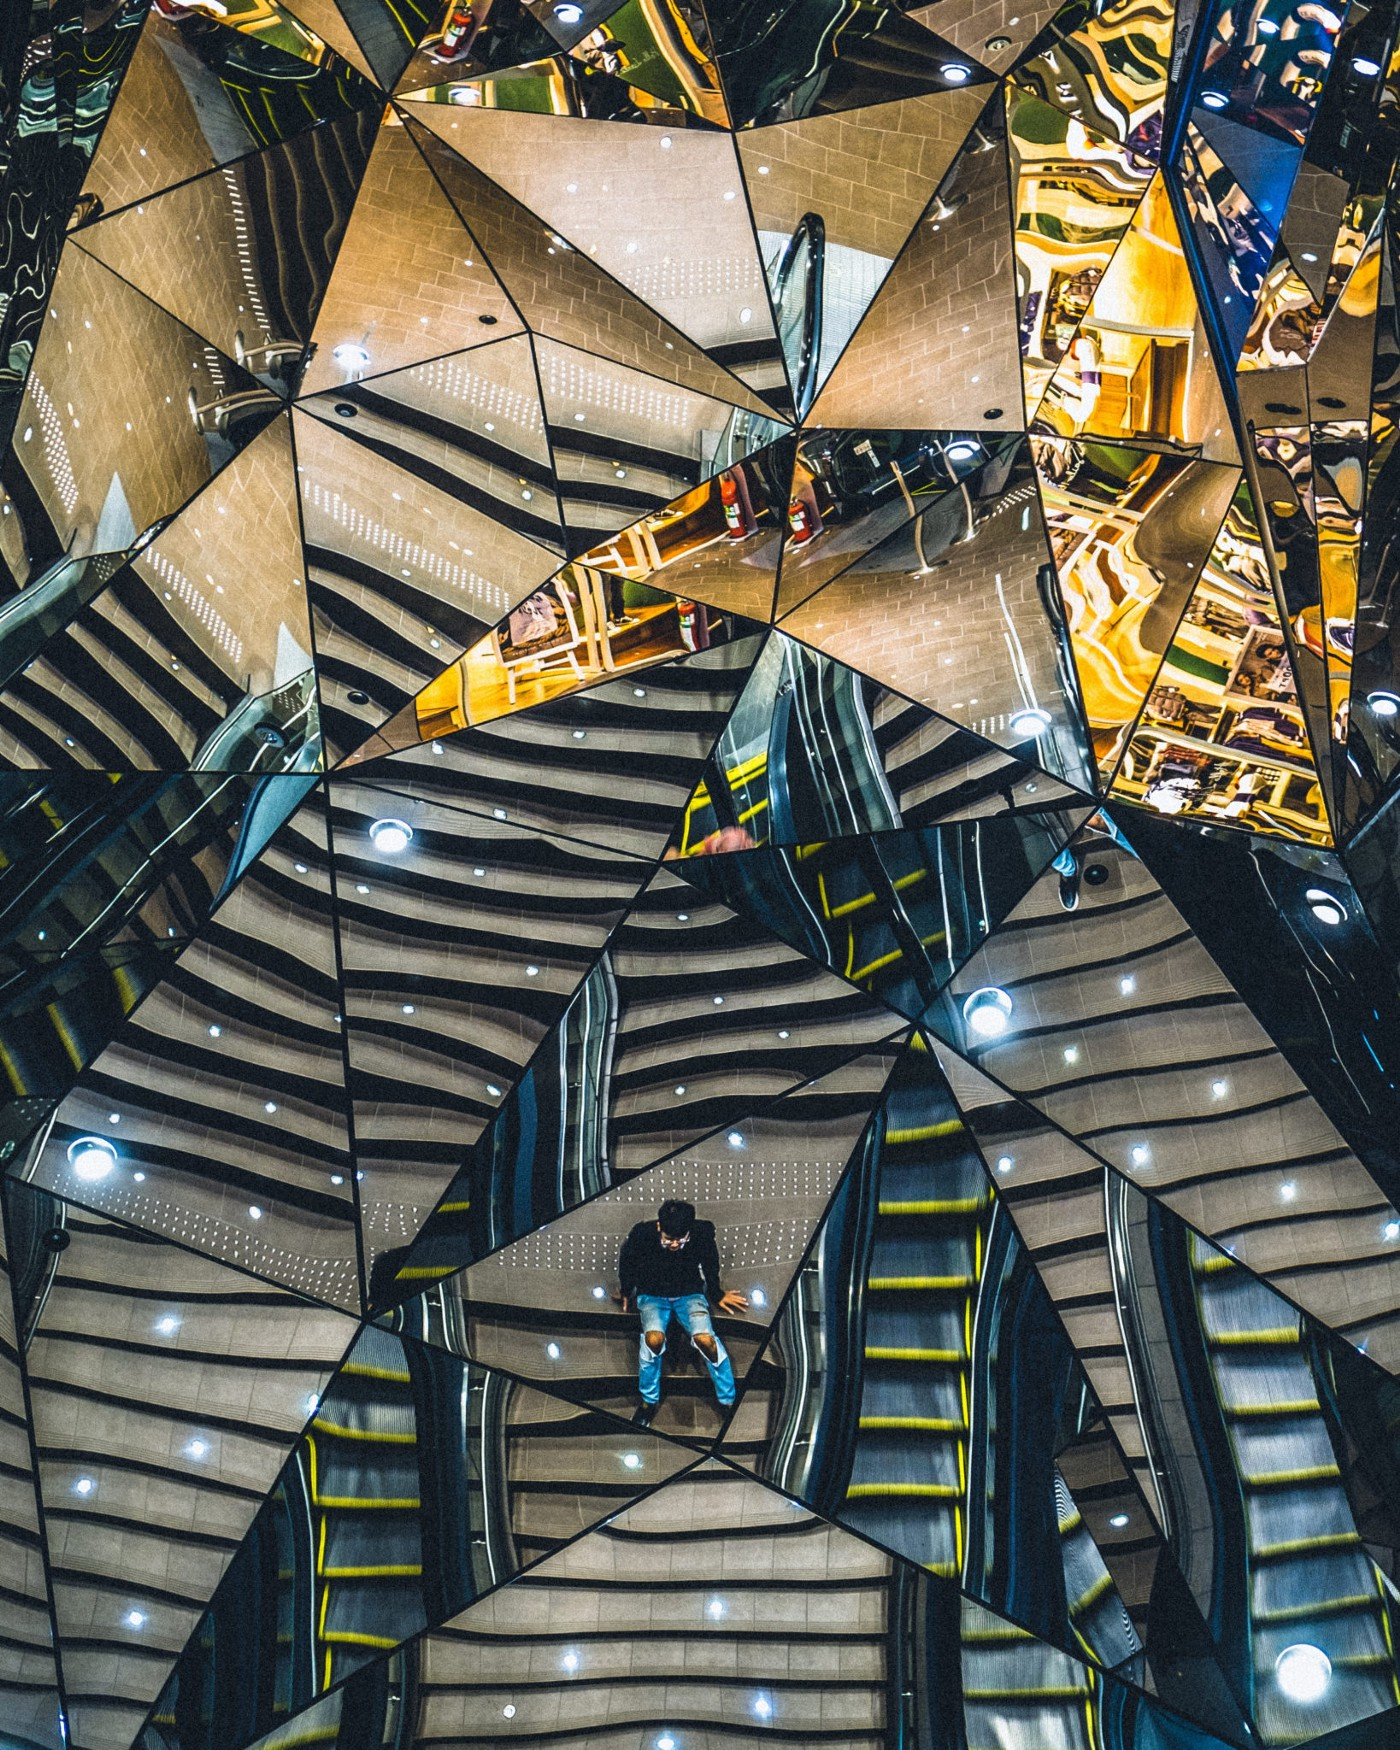 A jumble of reflections from a selection of differently sized triangular mirrors, including one of a person.